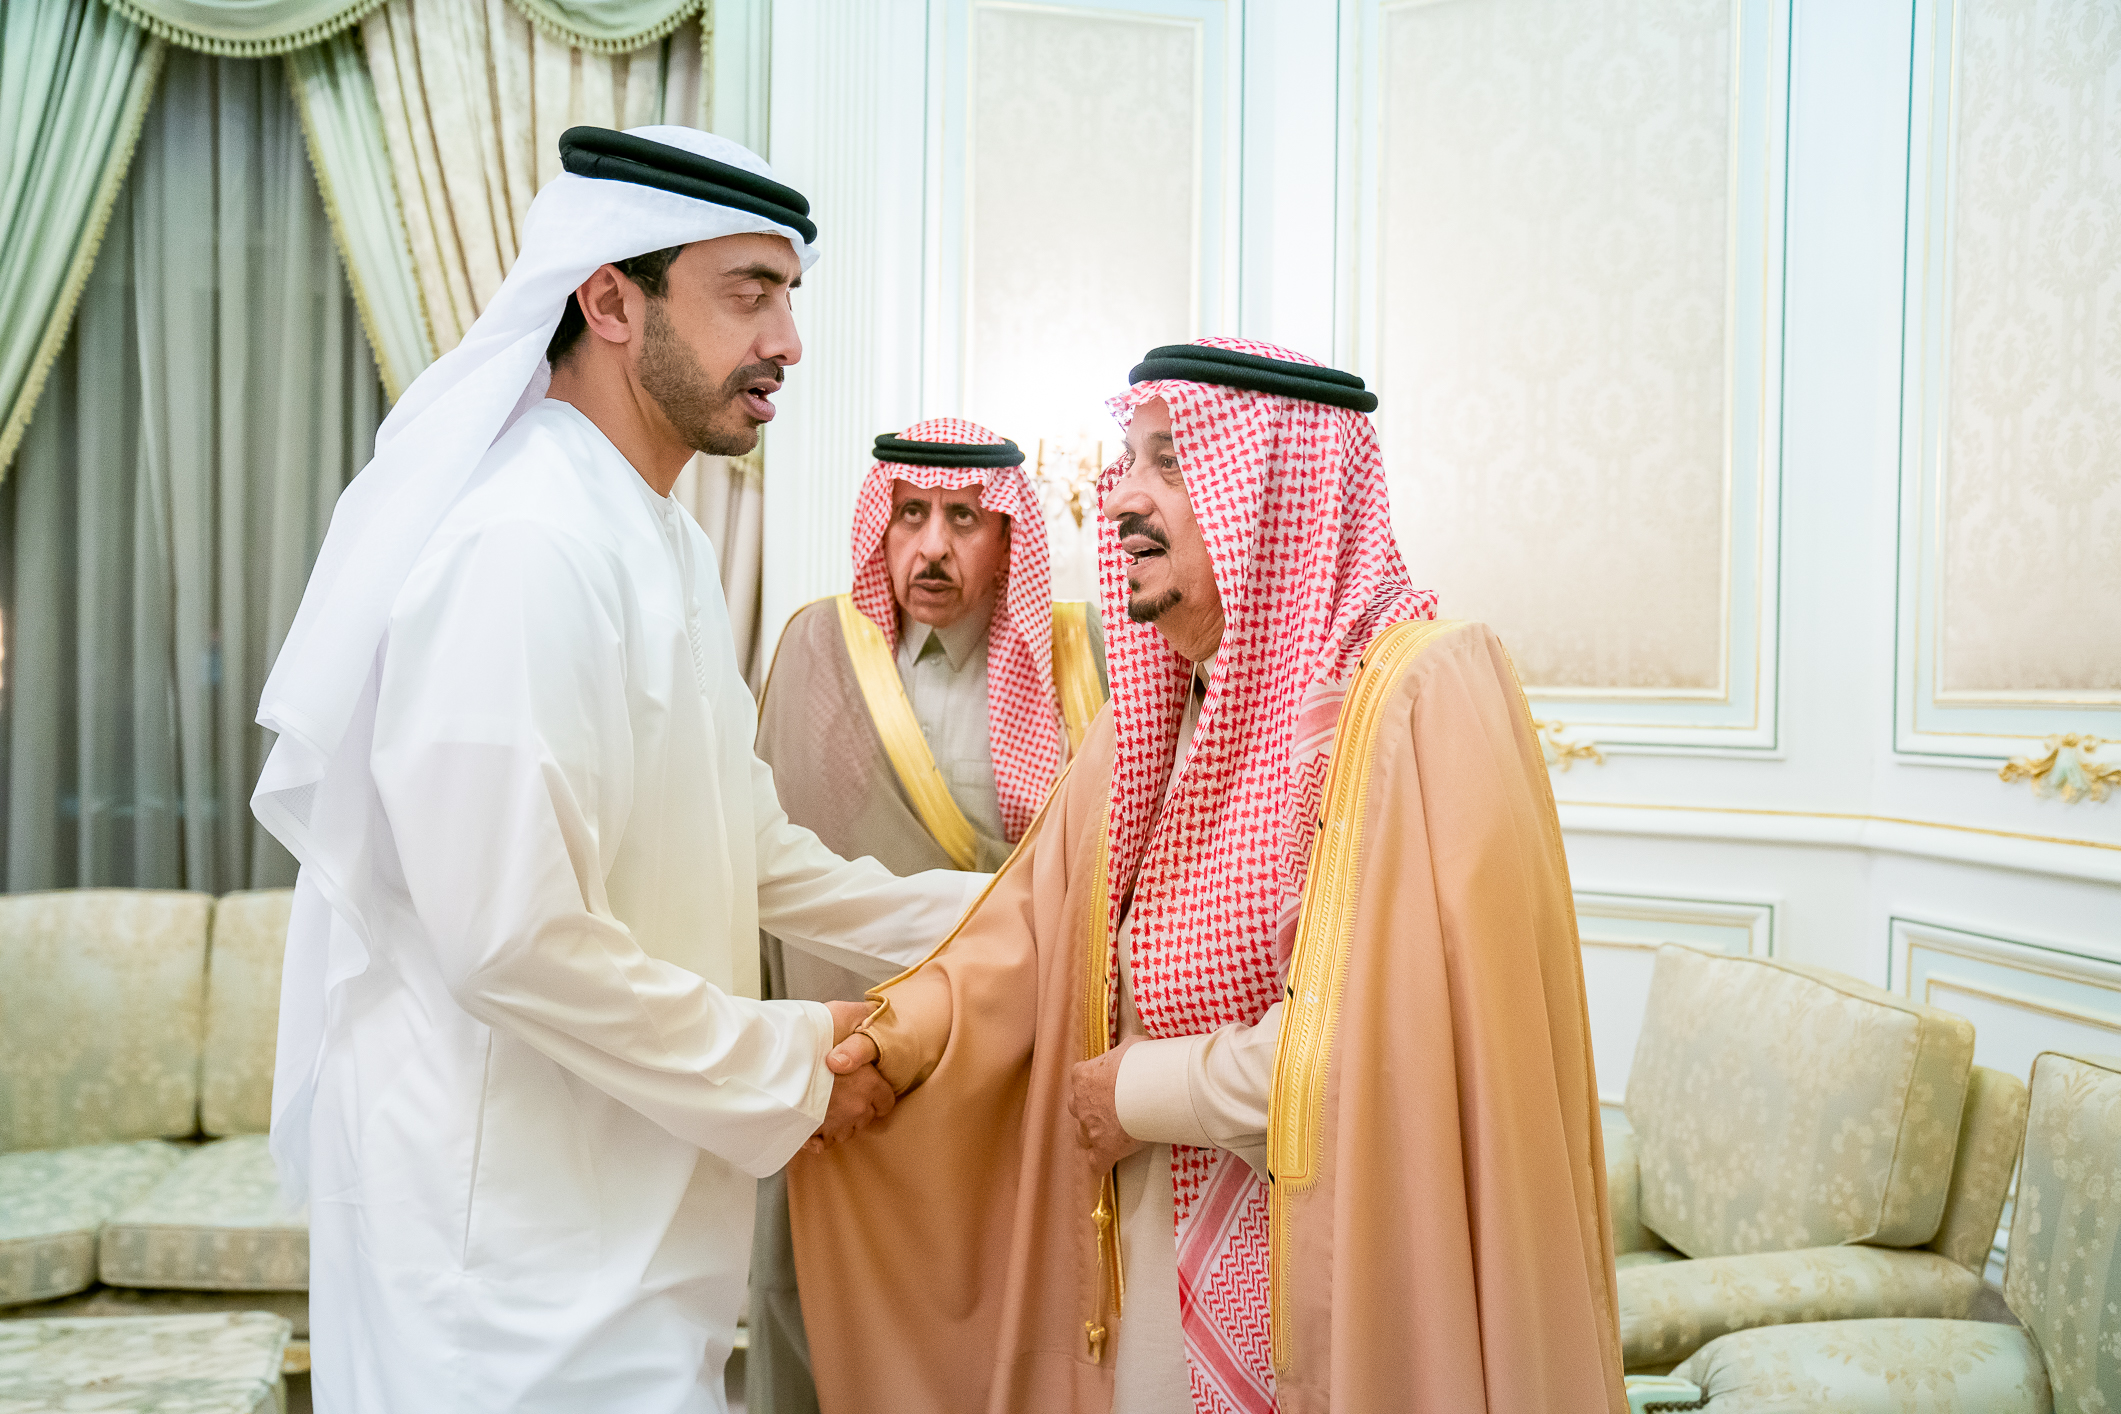 Photo: Abdullah bin Zayed conveys condolences of UAE Rulers to sons of Prince Miteb bin Abdelaziz